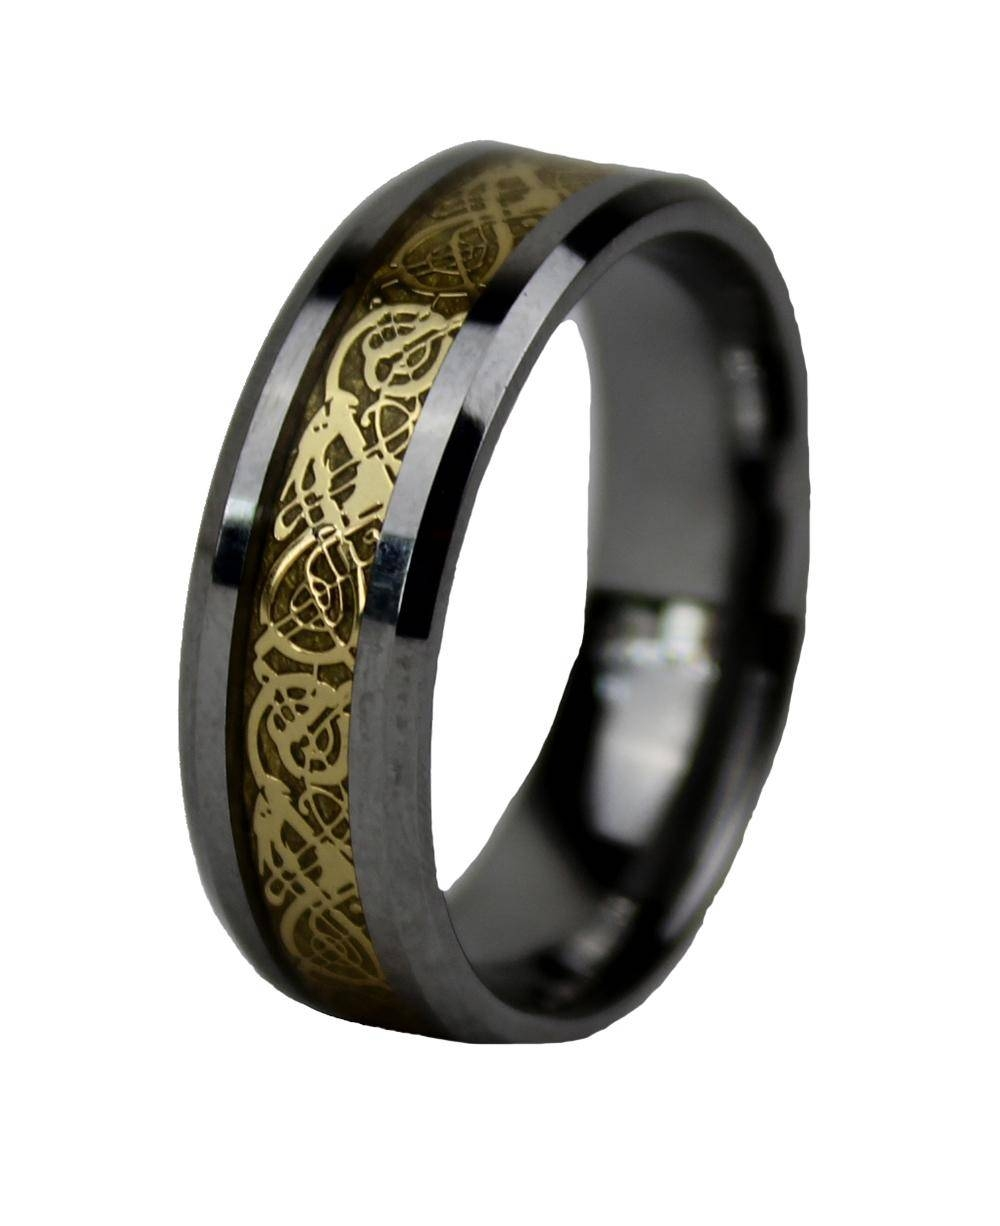 2017 Mens Celtic Wedding Ring 8Mm Tungsten Carbide Wedding Bands With Regard To Horn Inlay Titanium Wedding Bands (View 1 of 15)